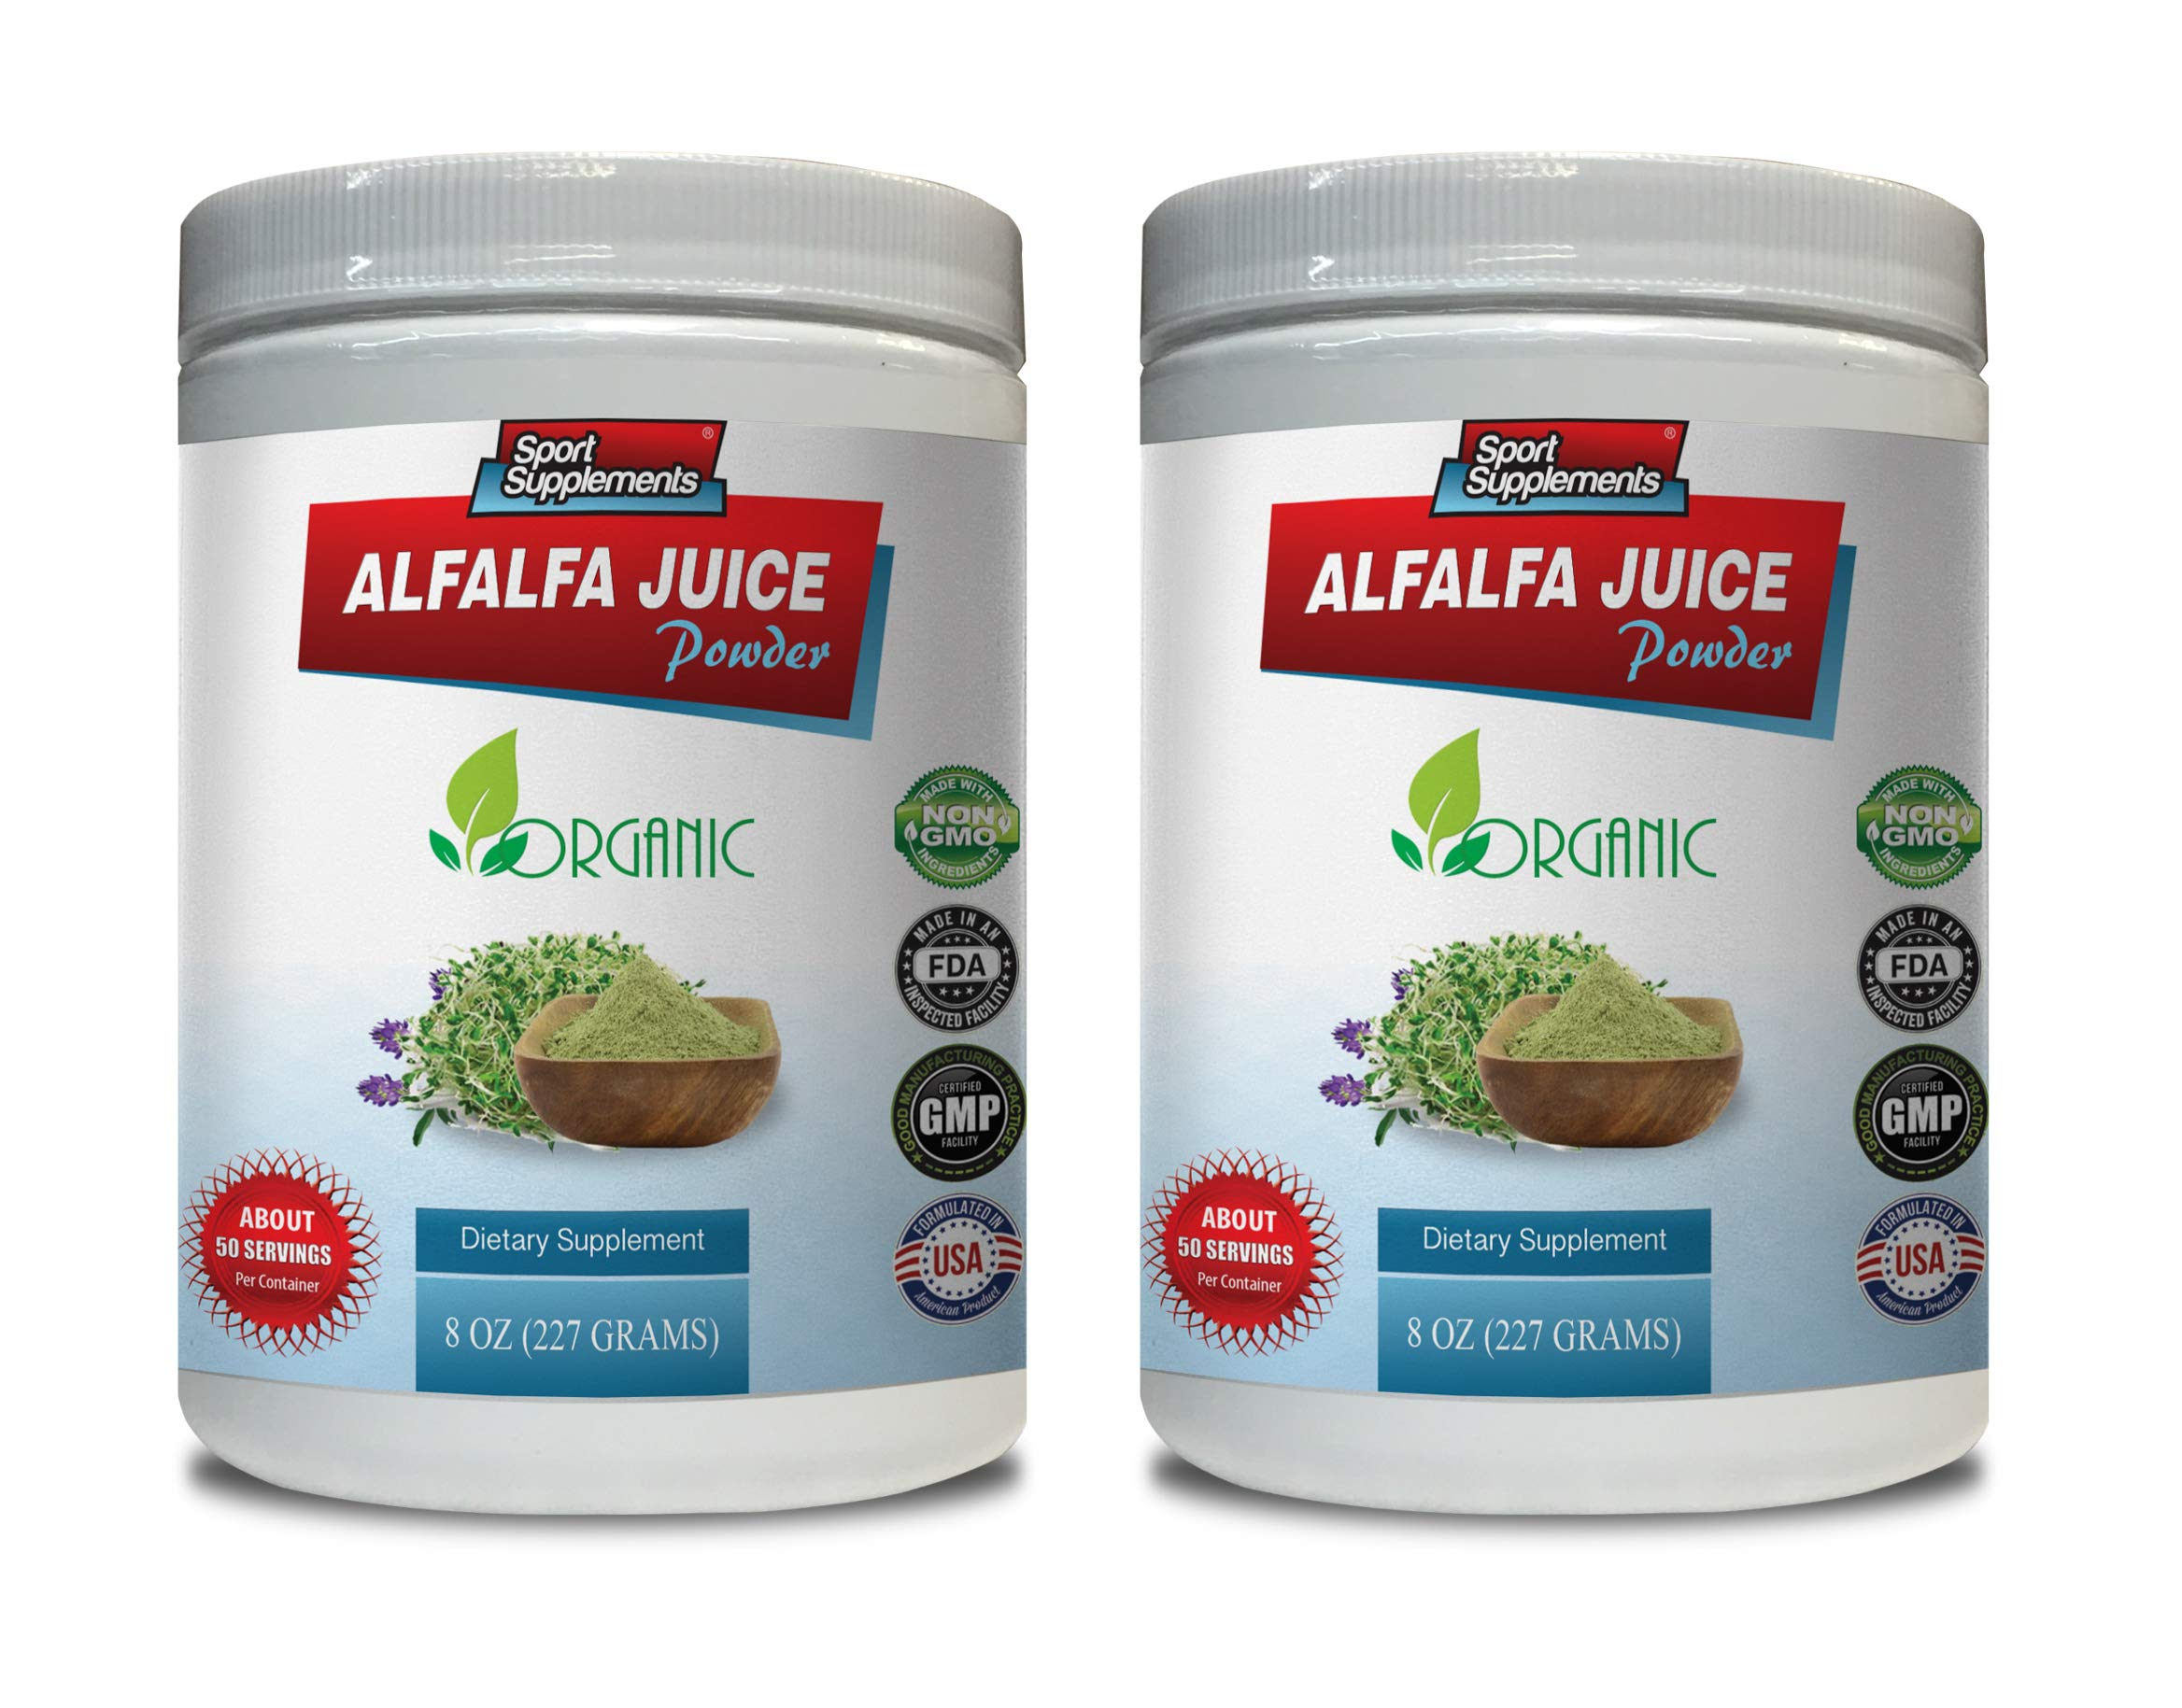 Immune System Support for Women - Alfalfa Juice Powder - Organic Dietary Supplement - Organic Alfalfa Supplement - 2 Cans 16 OZ (100 Servings)